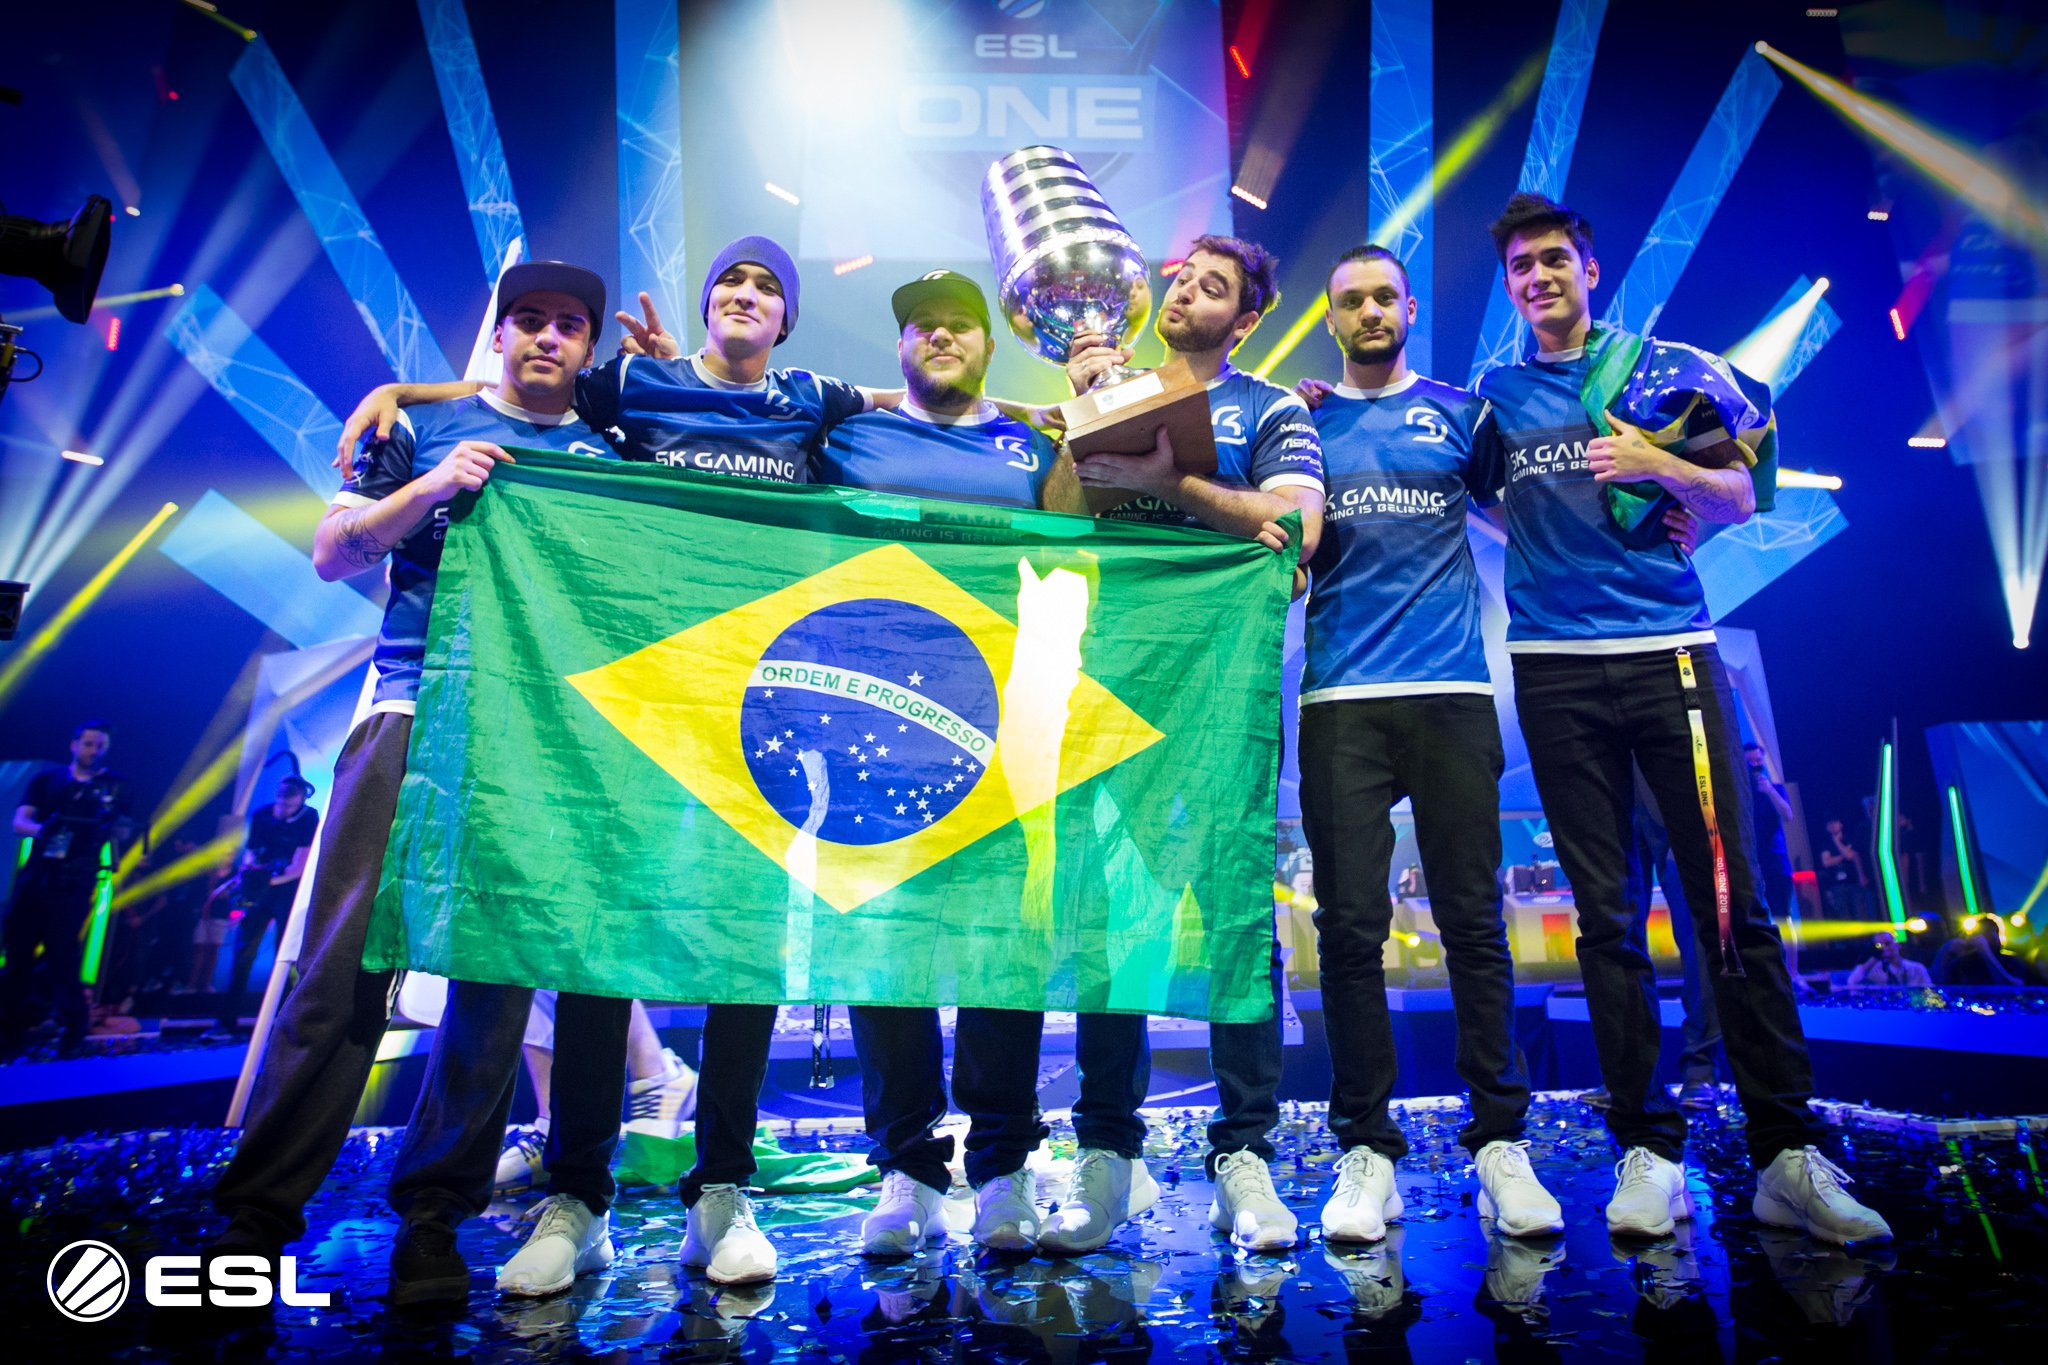 SK Gaming takes the win at ESL One Cologne - Counter-Strike: Global  Offensive - Gamereactor